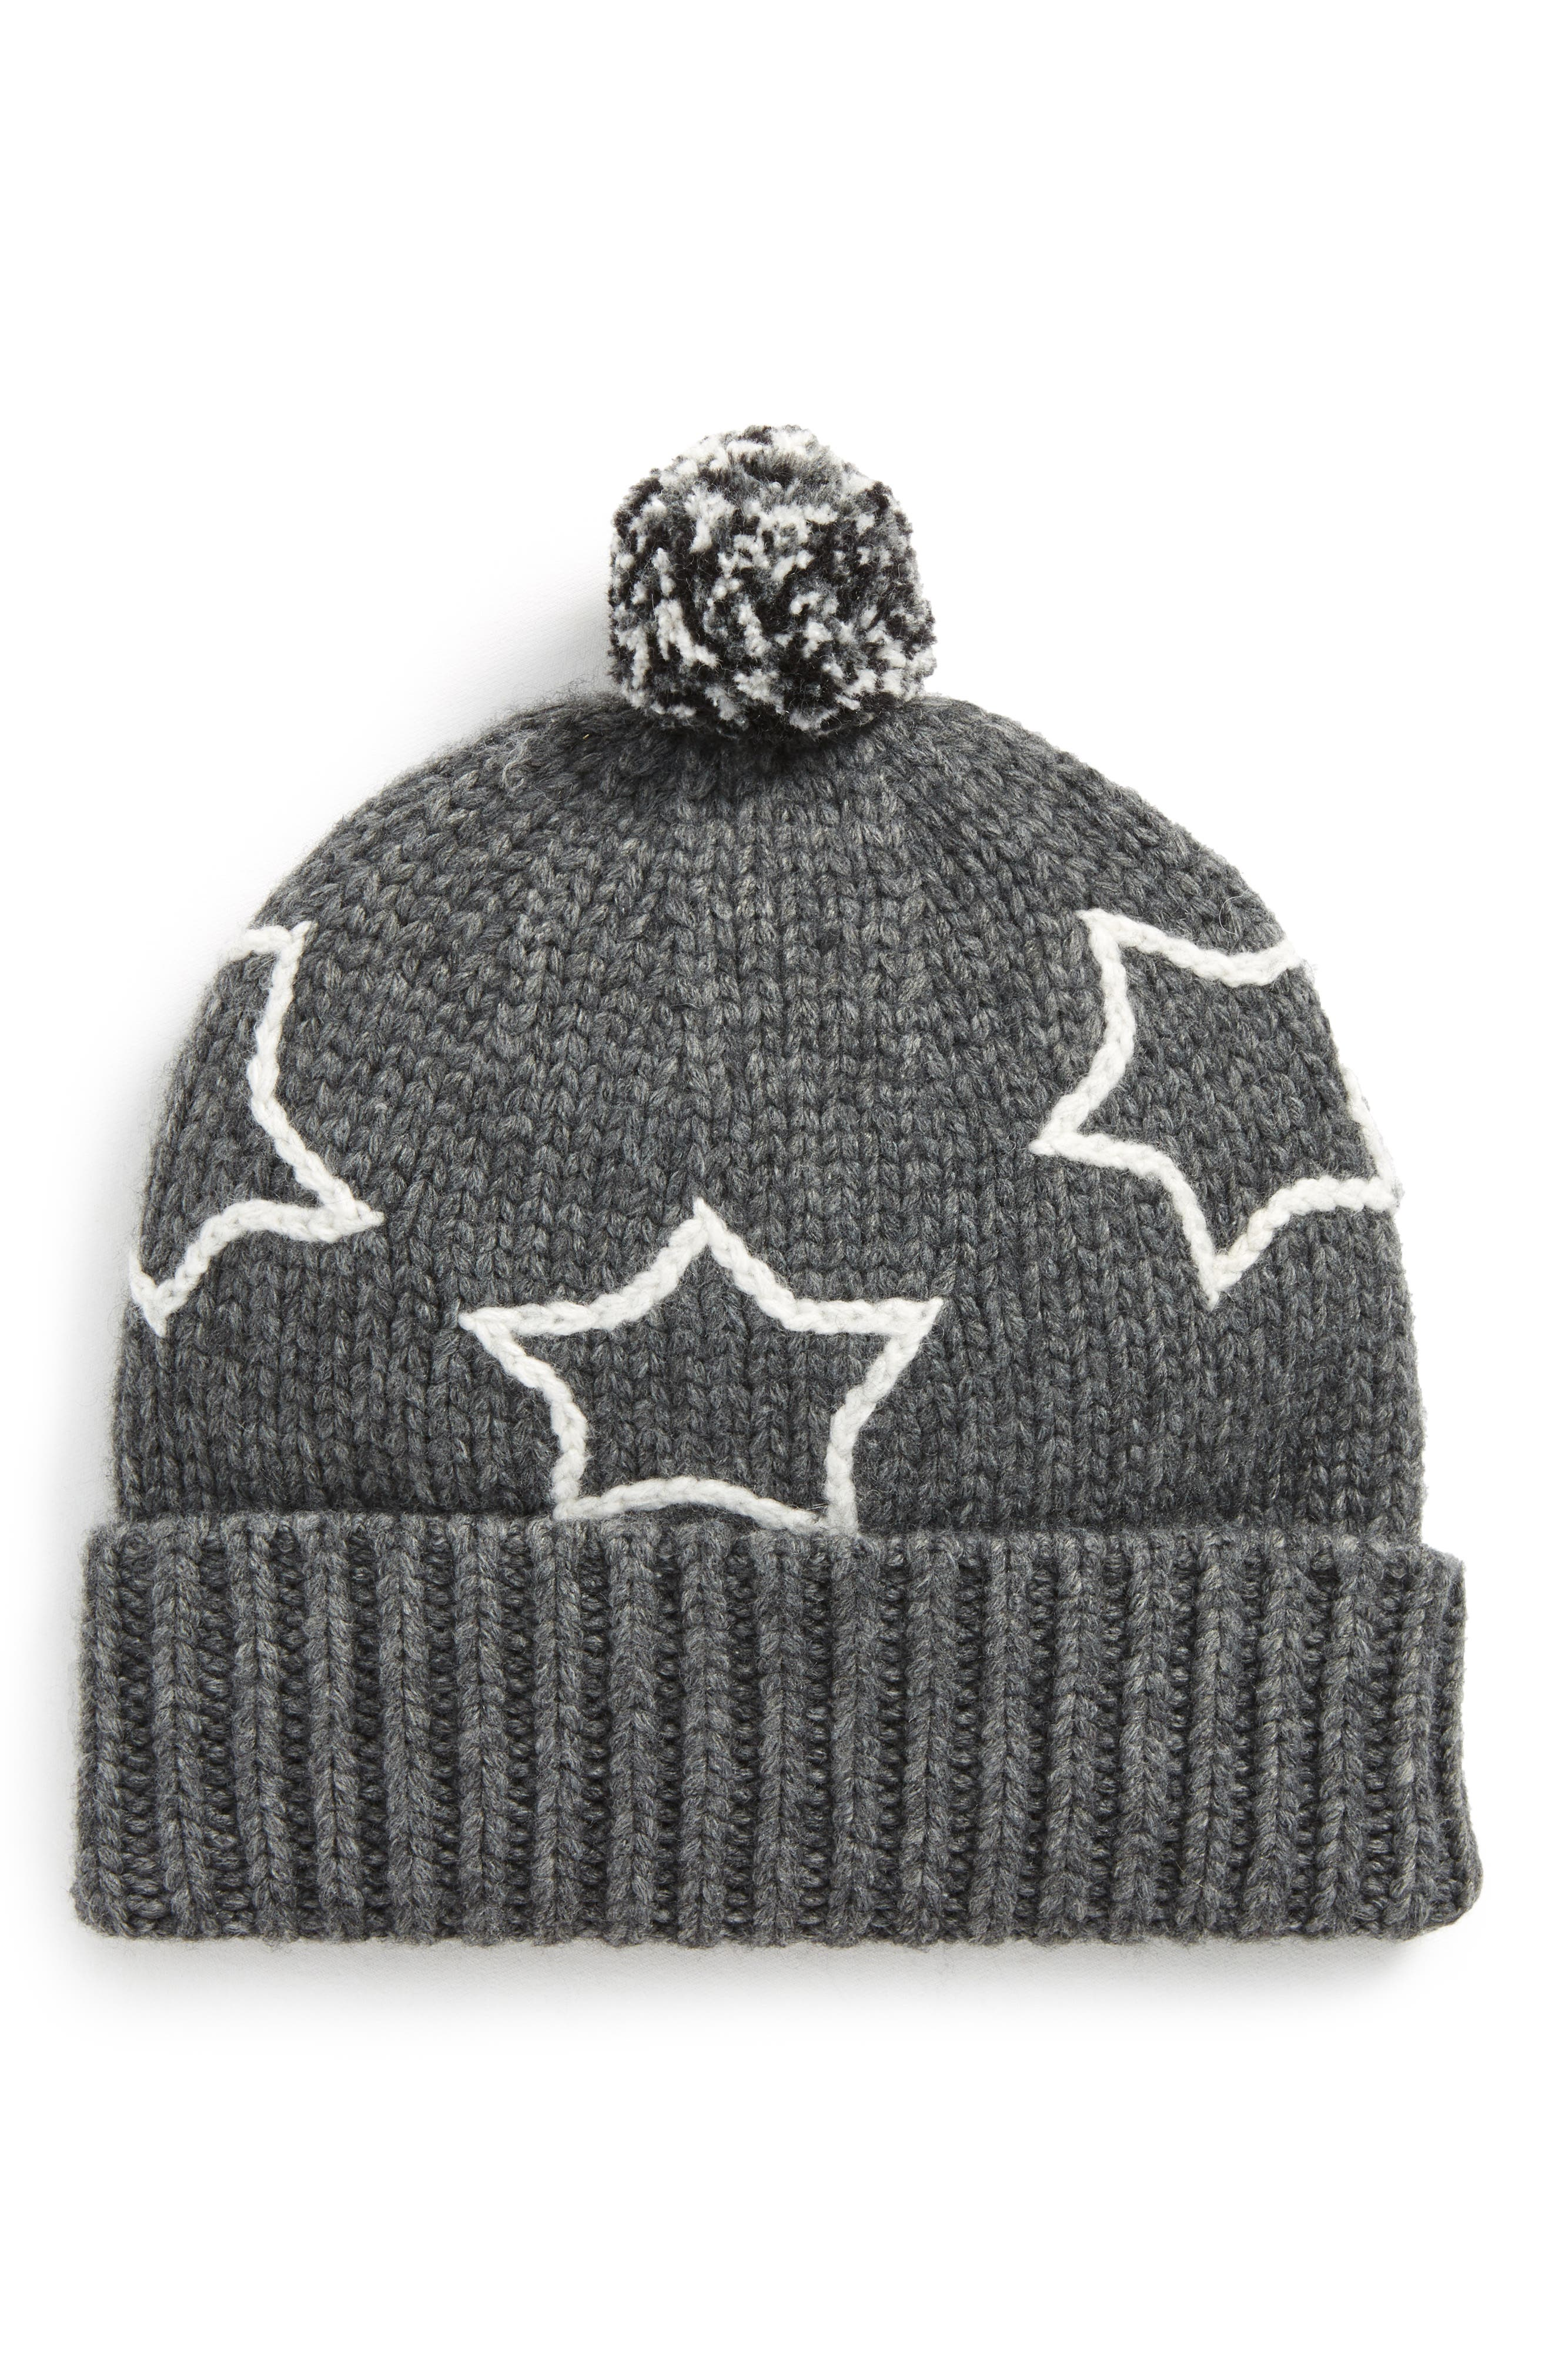 Alternate Image 1 Selected - Madewell Starry Pompom Beanie